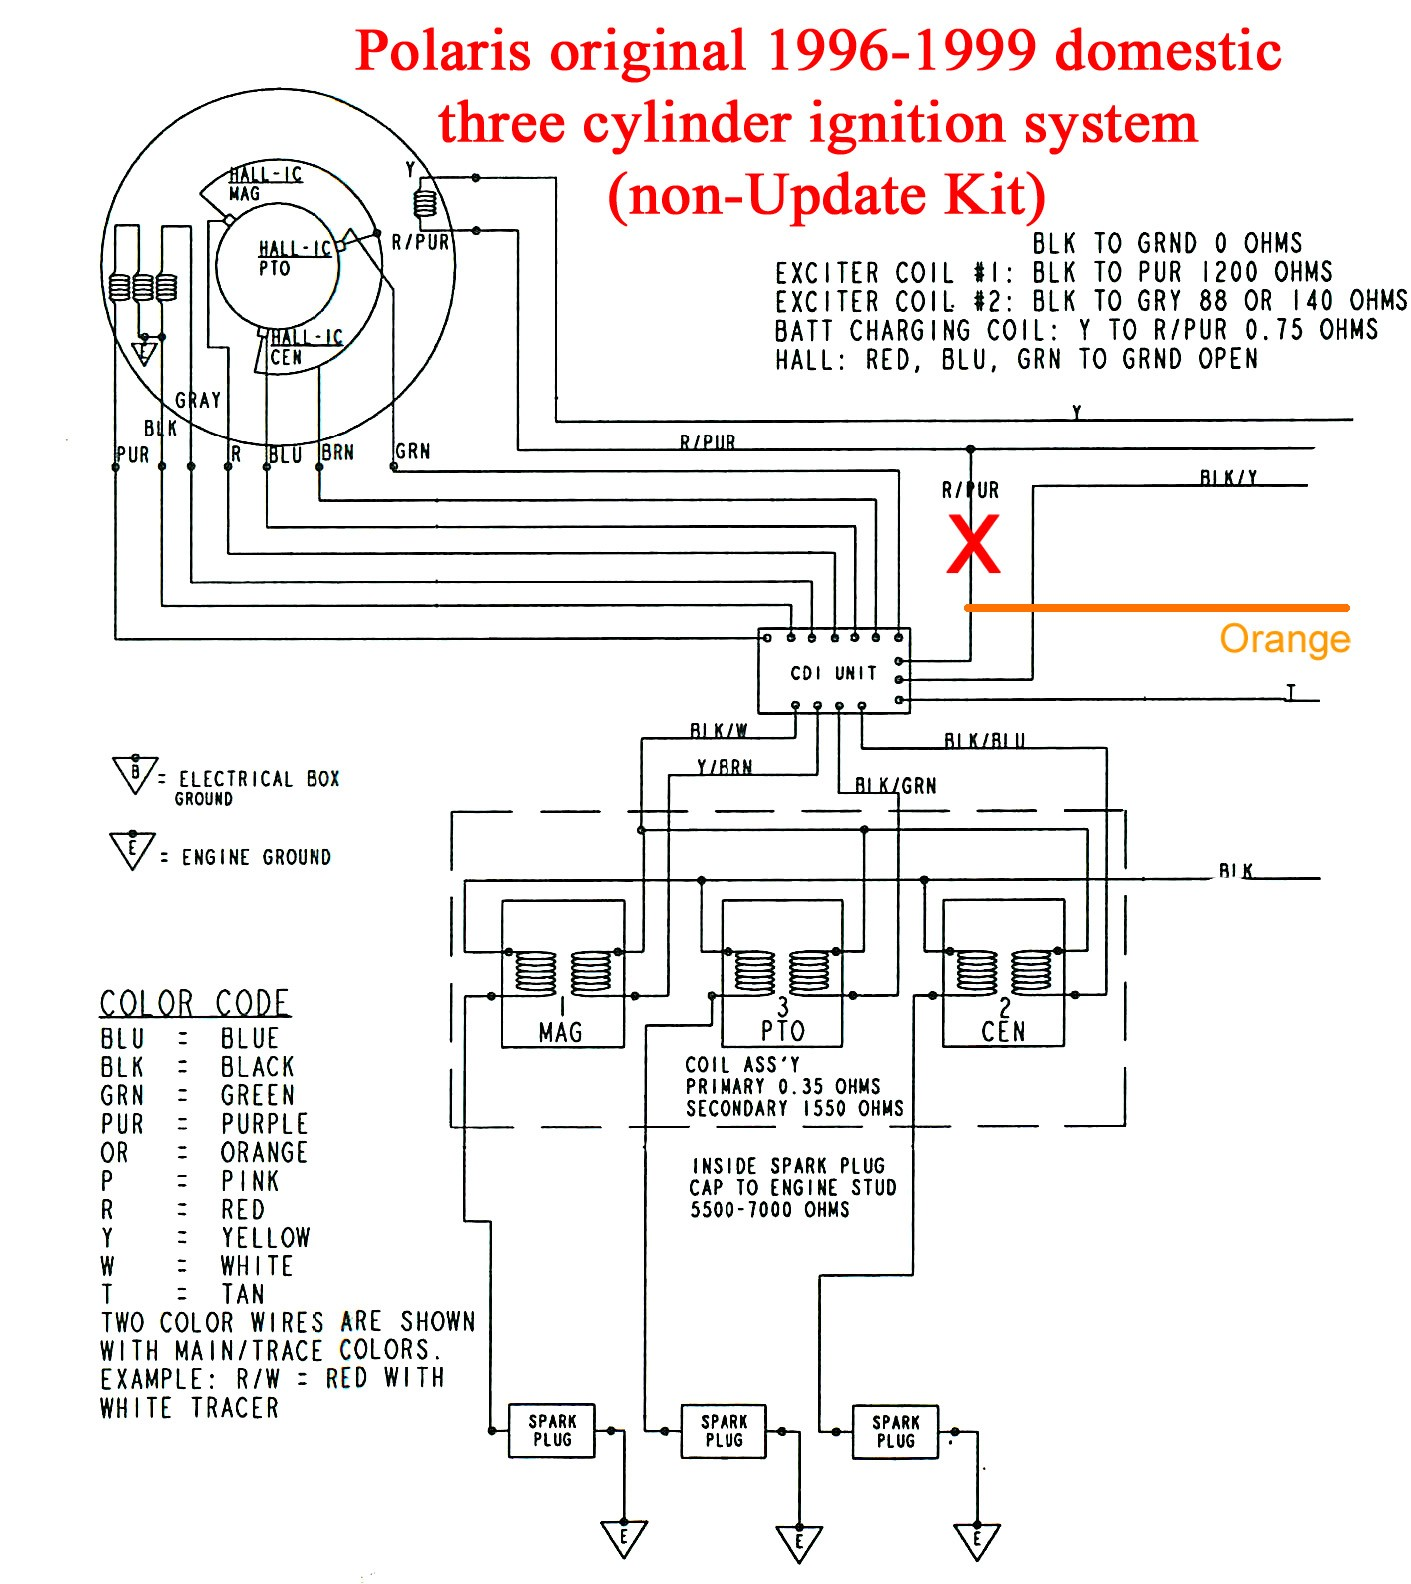 Cb200 Wiring Diagram 1974 Honda Cb450 Motorcycle Cd70 Engine Cl200 Rebuild Cb750